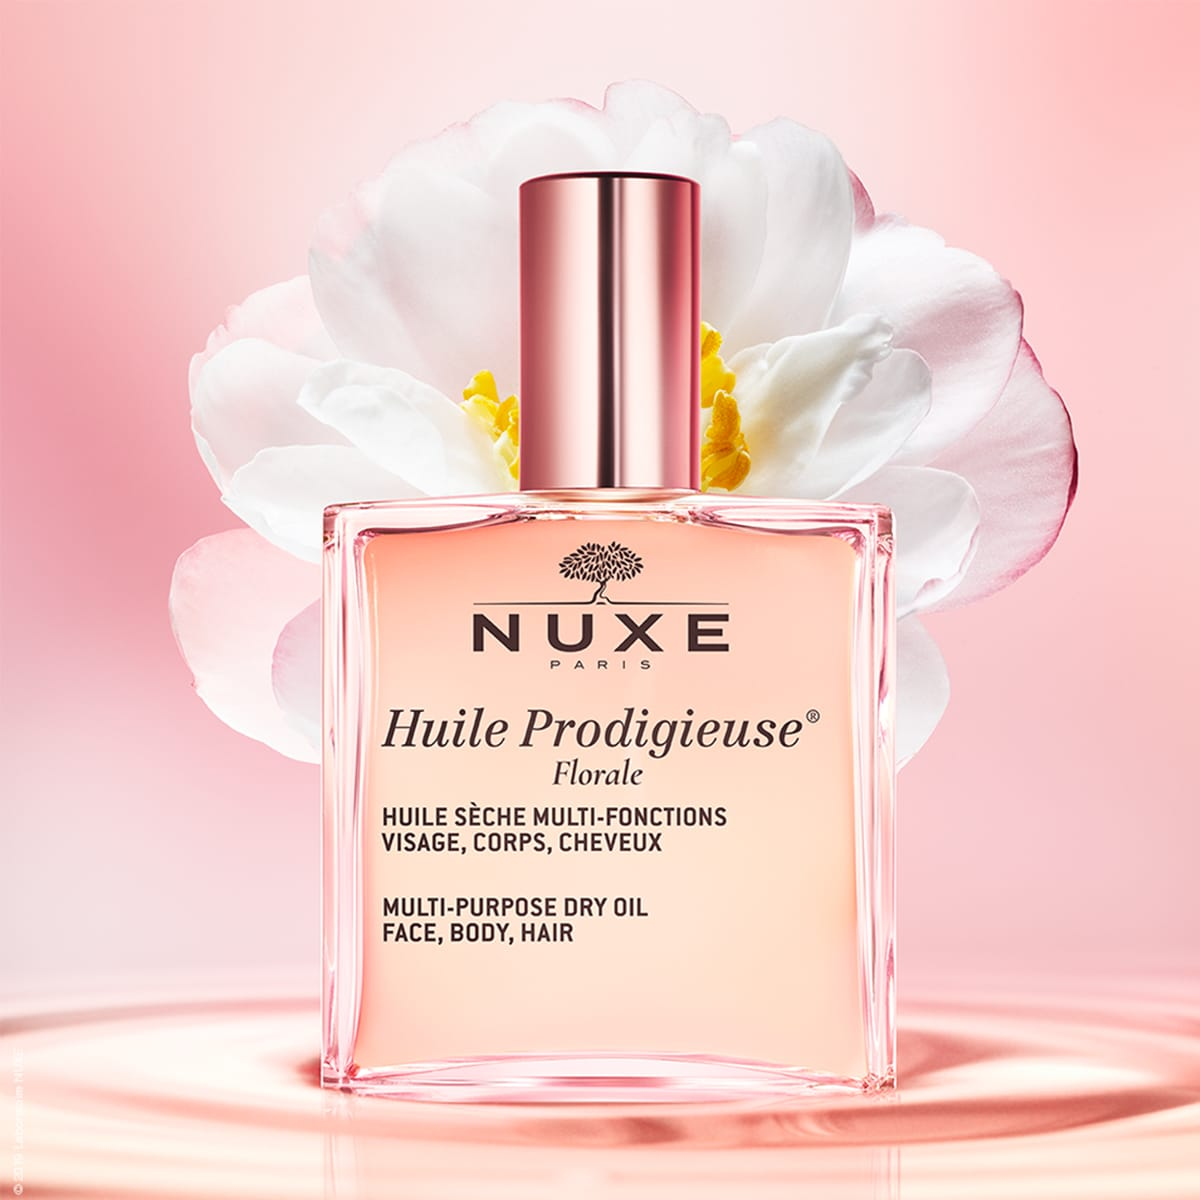 Nuxe dry oil floral